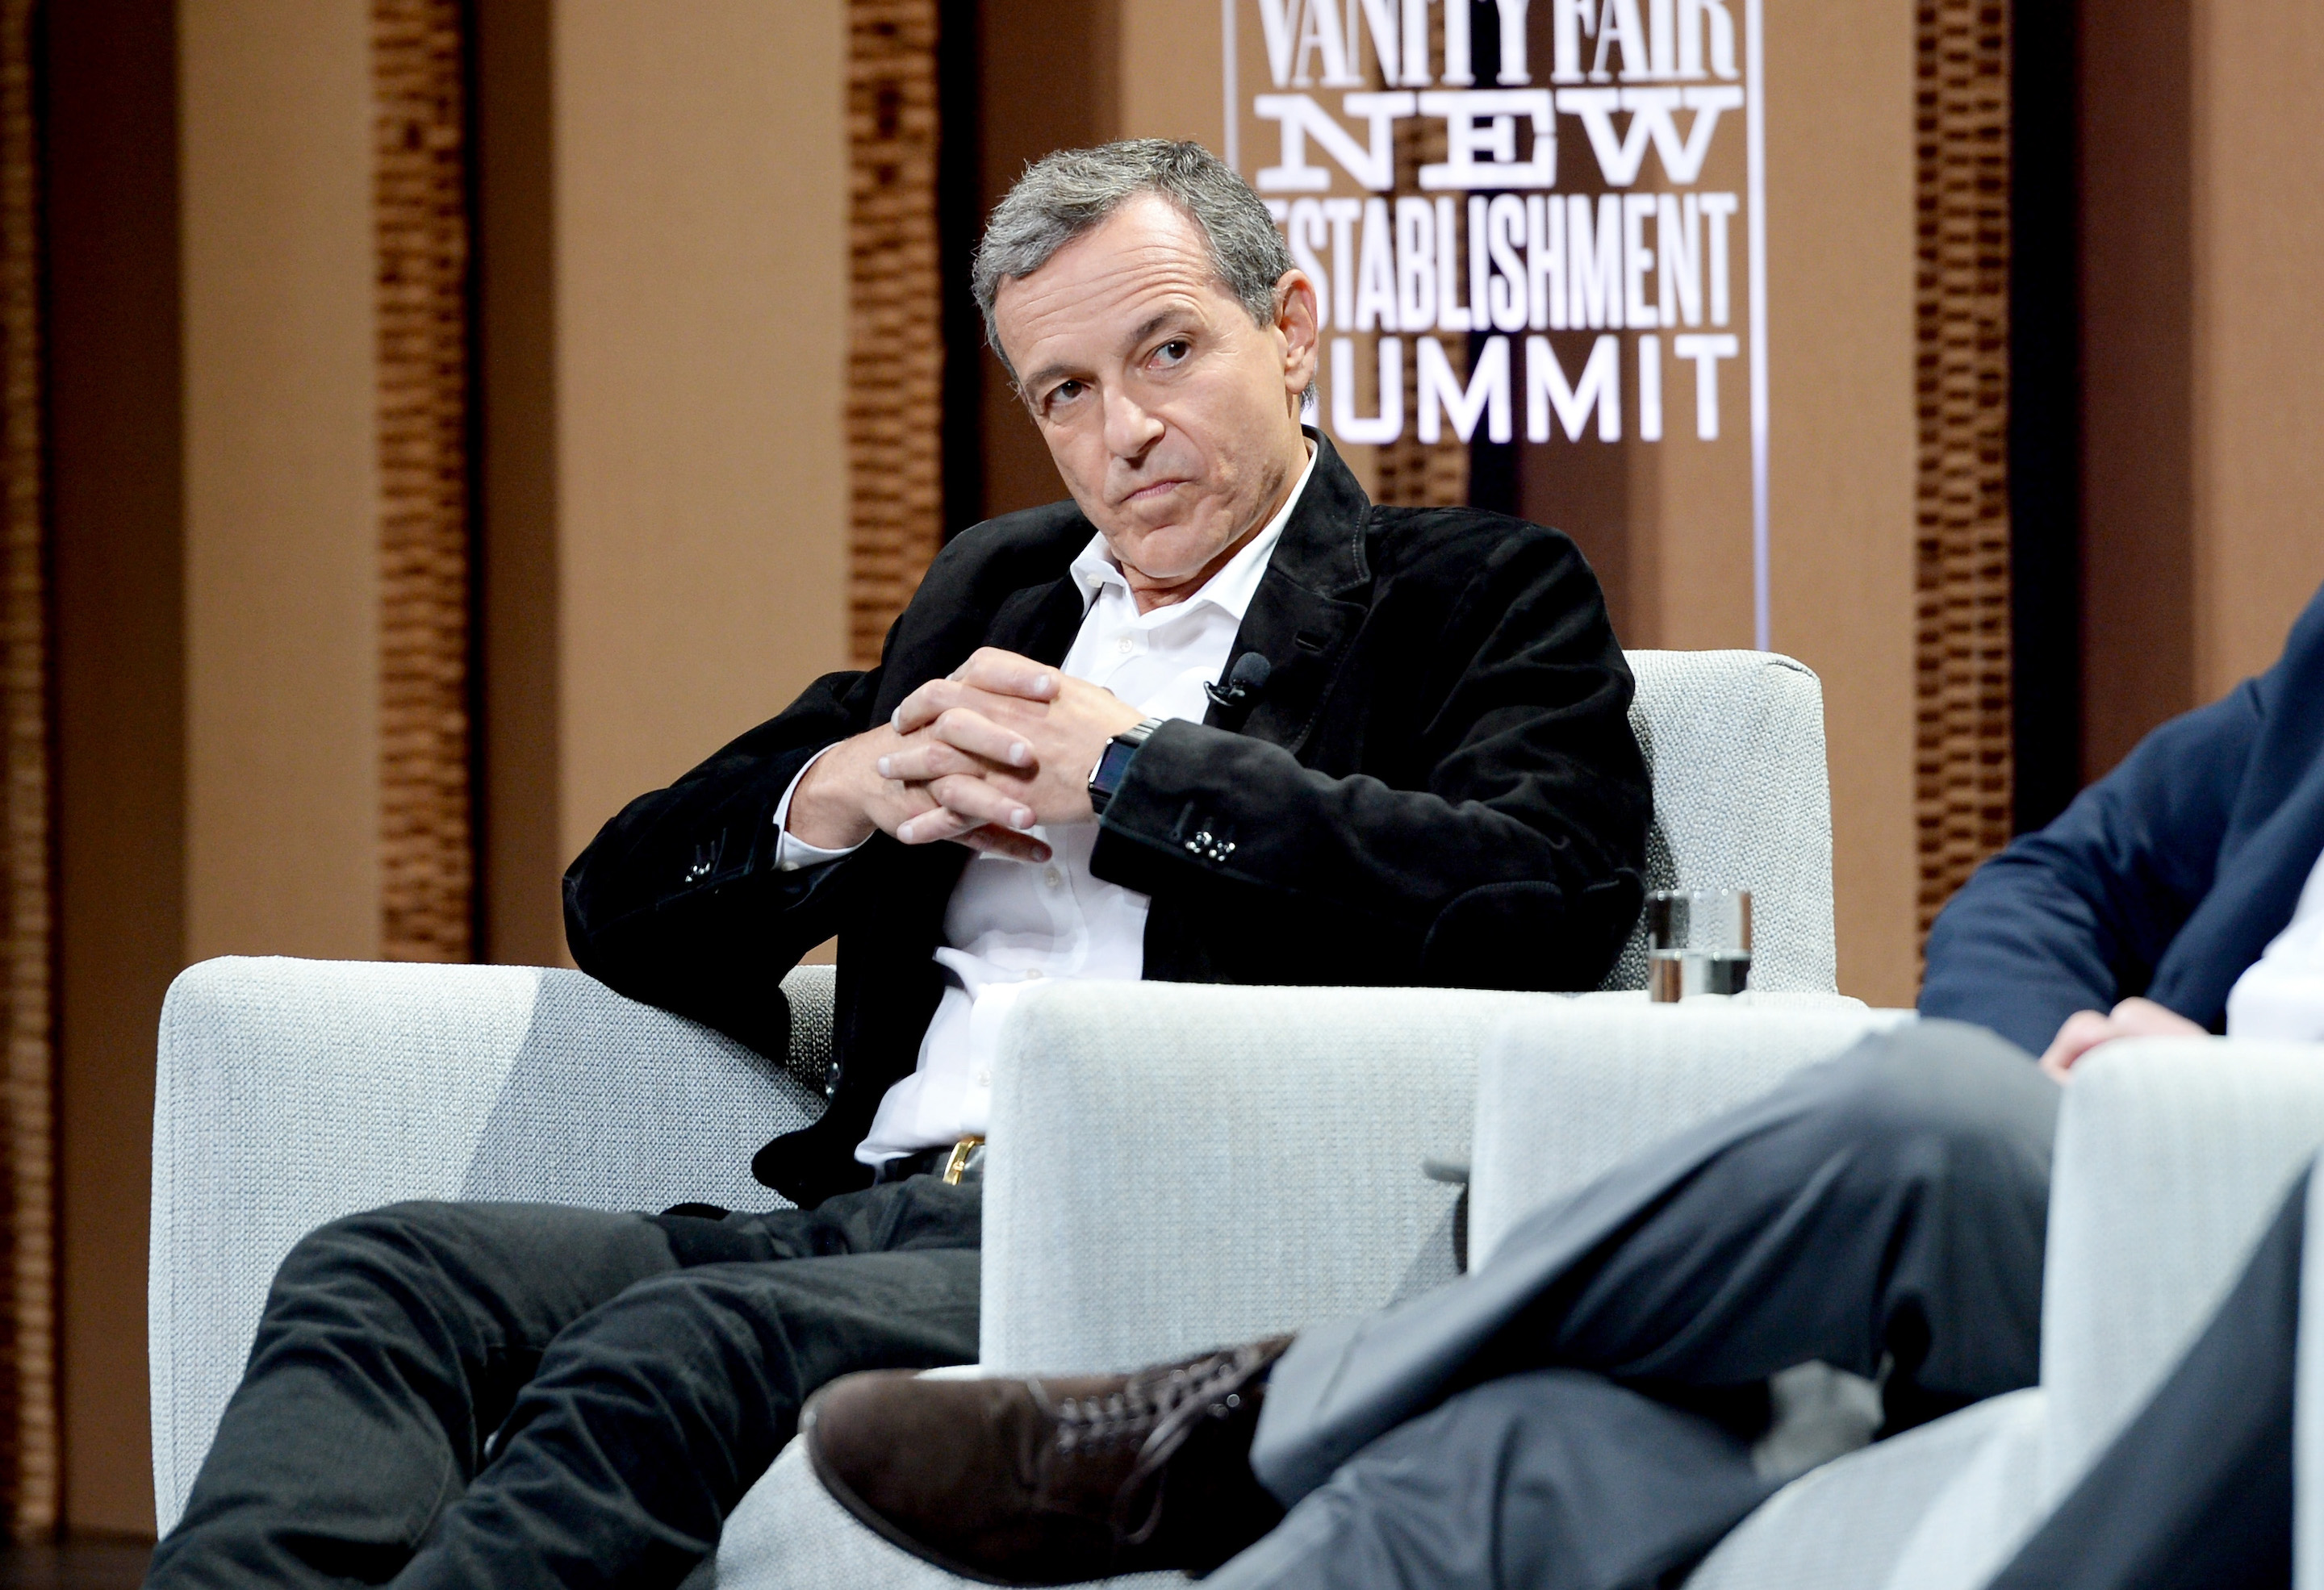 Disney CEO Bob Iger speaks onstage at the Vanity Fair New Establishment Summit at Yerba Buena Center for the Arts on October 6, 2015 in San Francisco, California. Iger resigned Sept. 10 from Apple's board of directors, as both companies aim to launch competing video streaming services, Disney Plus and Apple TV Plus.